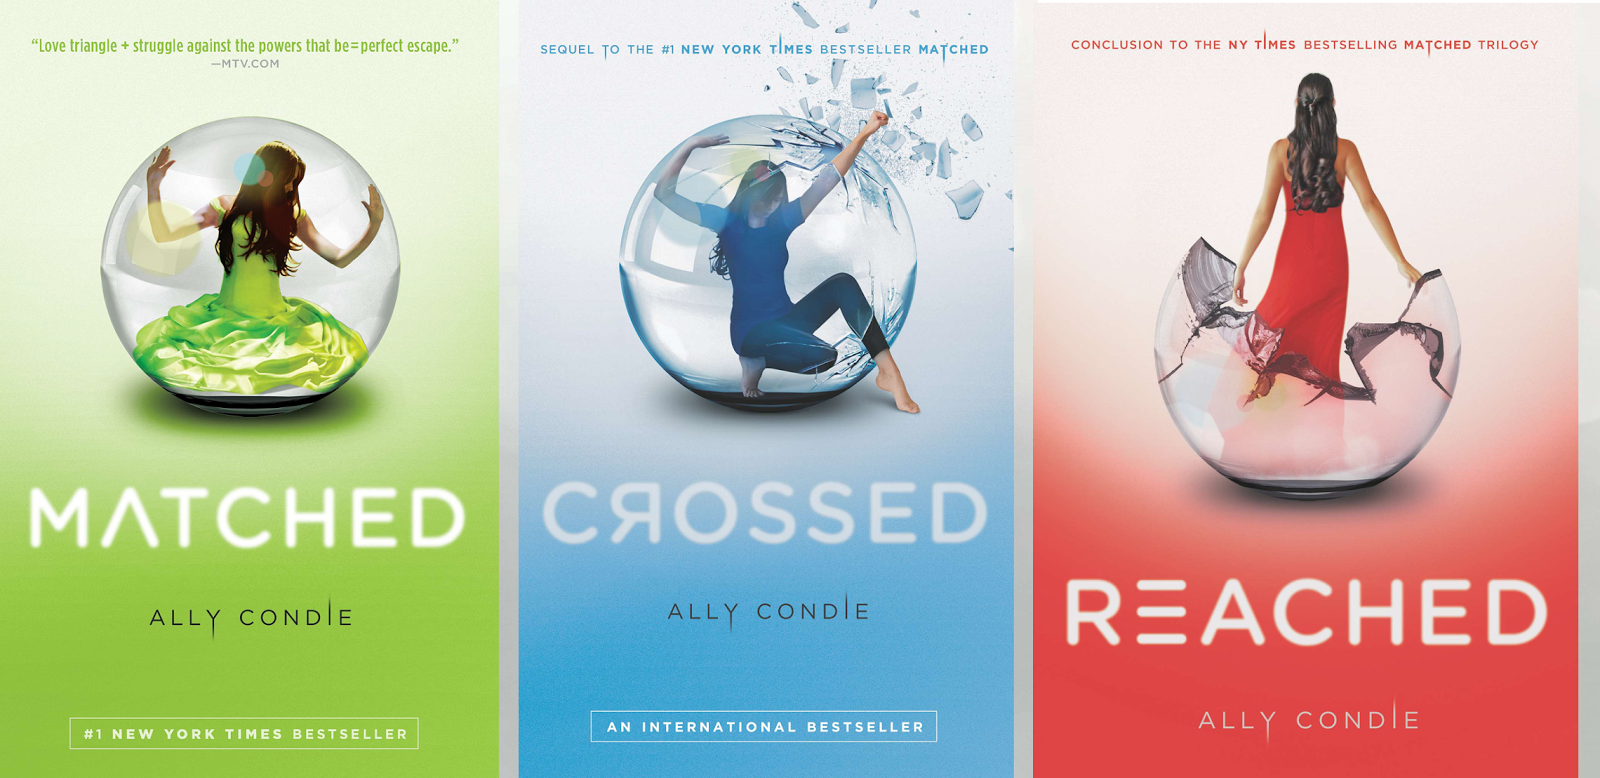 Ya book queen ebook deals the matched trilogy the ebook versions of ally condies matched crossed and reached are each available across many e retailers for 299 each all 3 books are less than 900 fandeluxe Images